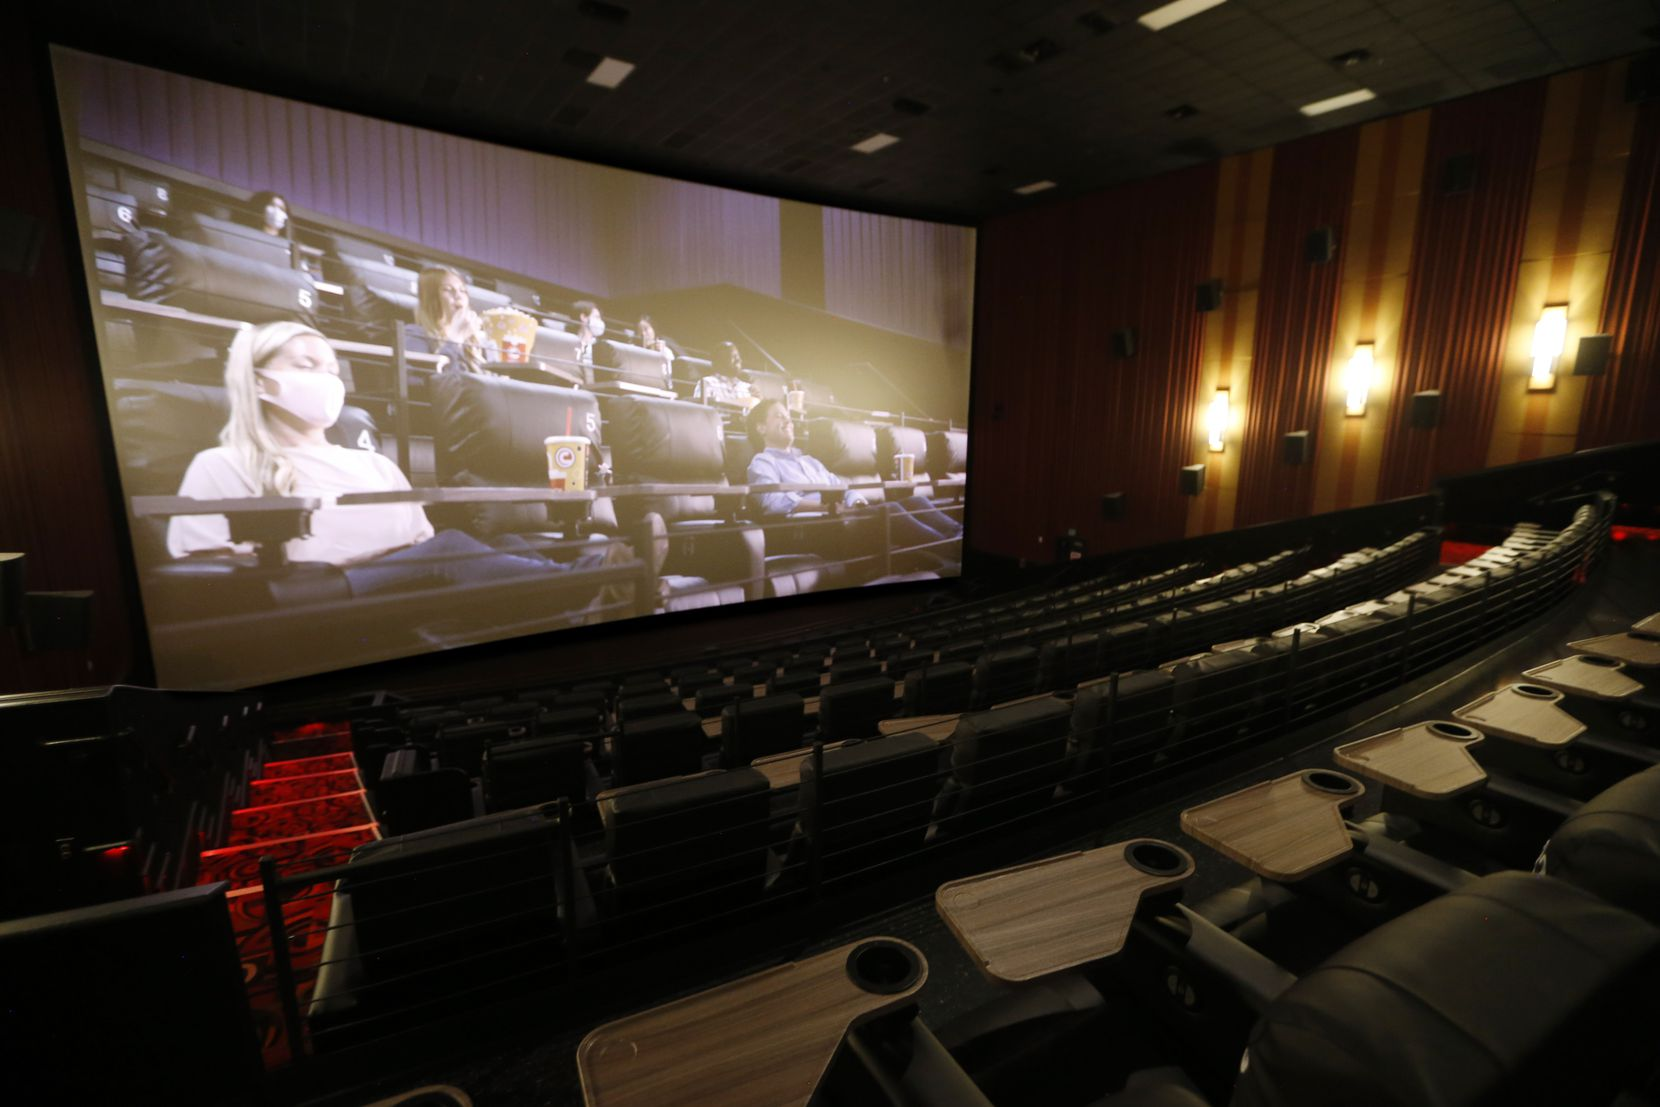 A Cinemark video plays about the safety measures that are in place at Cinemark West in Plano. The theater will clean seats and handrails after each showing.